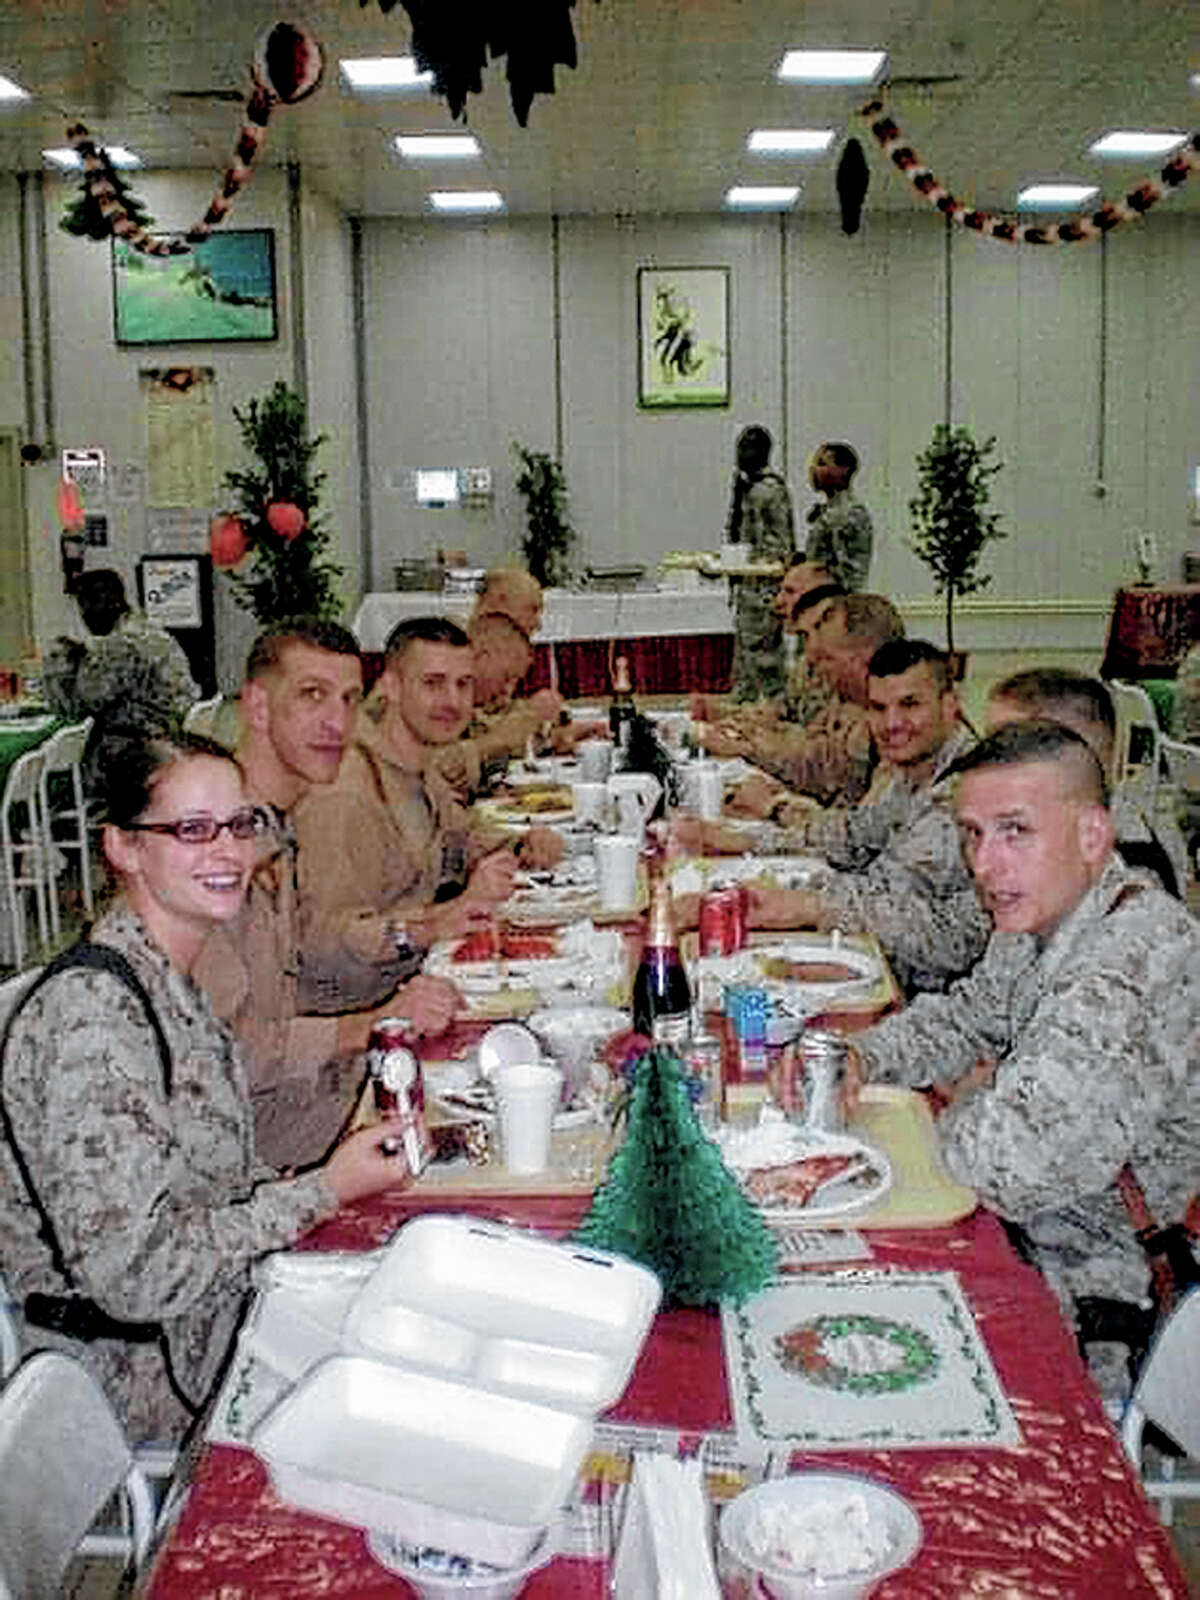 Maggie Seymour shares a meal with her fellow Marines during a Thanksgiving deployed to Iraq.